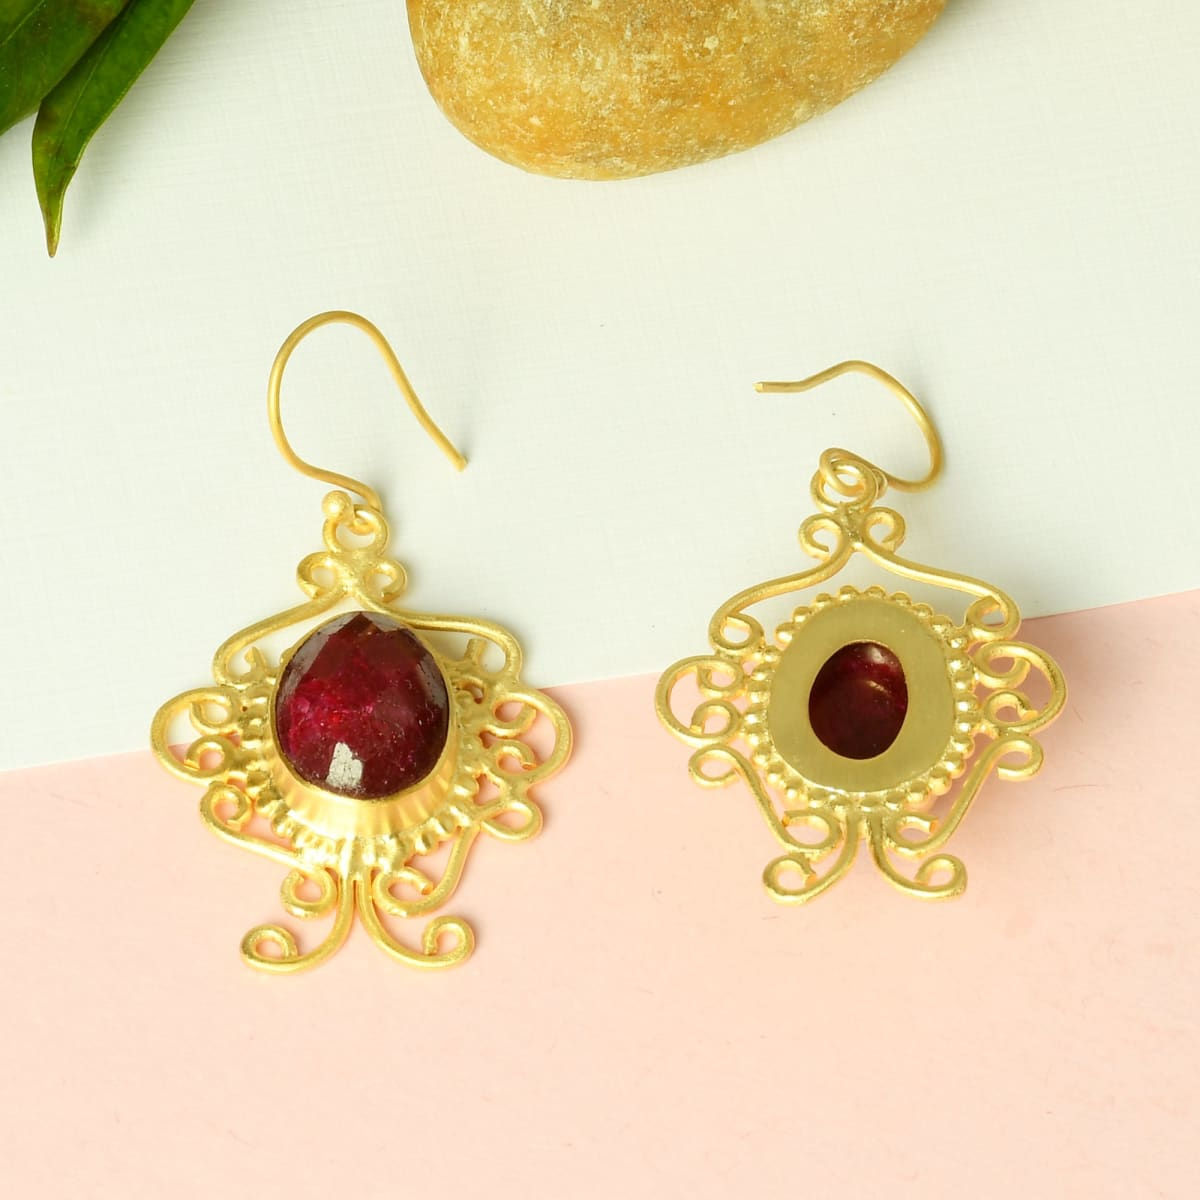 Fashionable Design 18K Gold Vermeil Red Corundum Gemstone Wire Wrap Dangle Earrings - by Bhagat Jewels